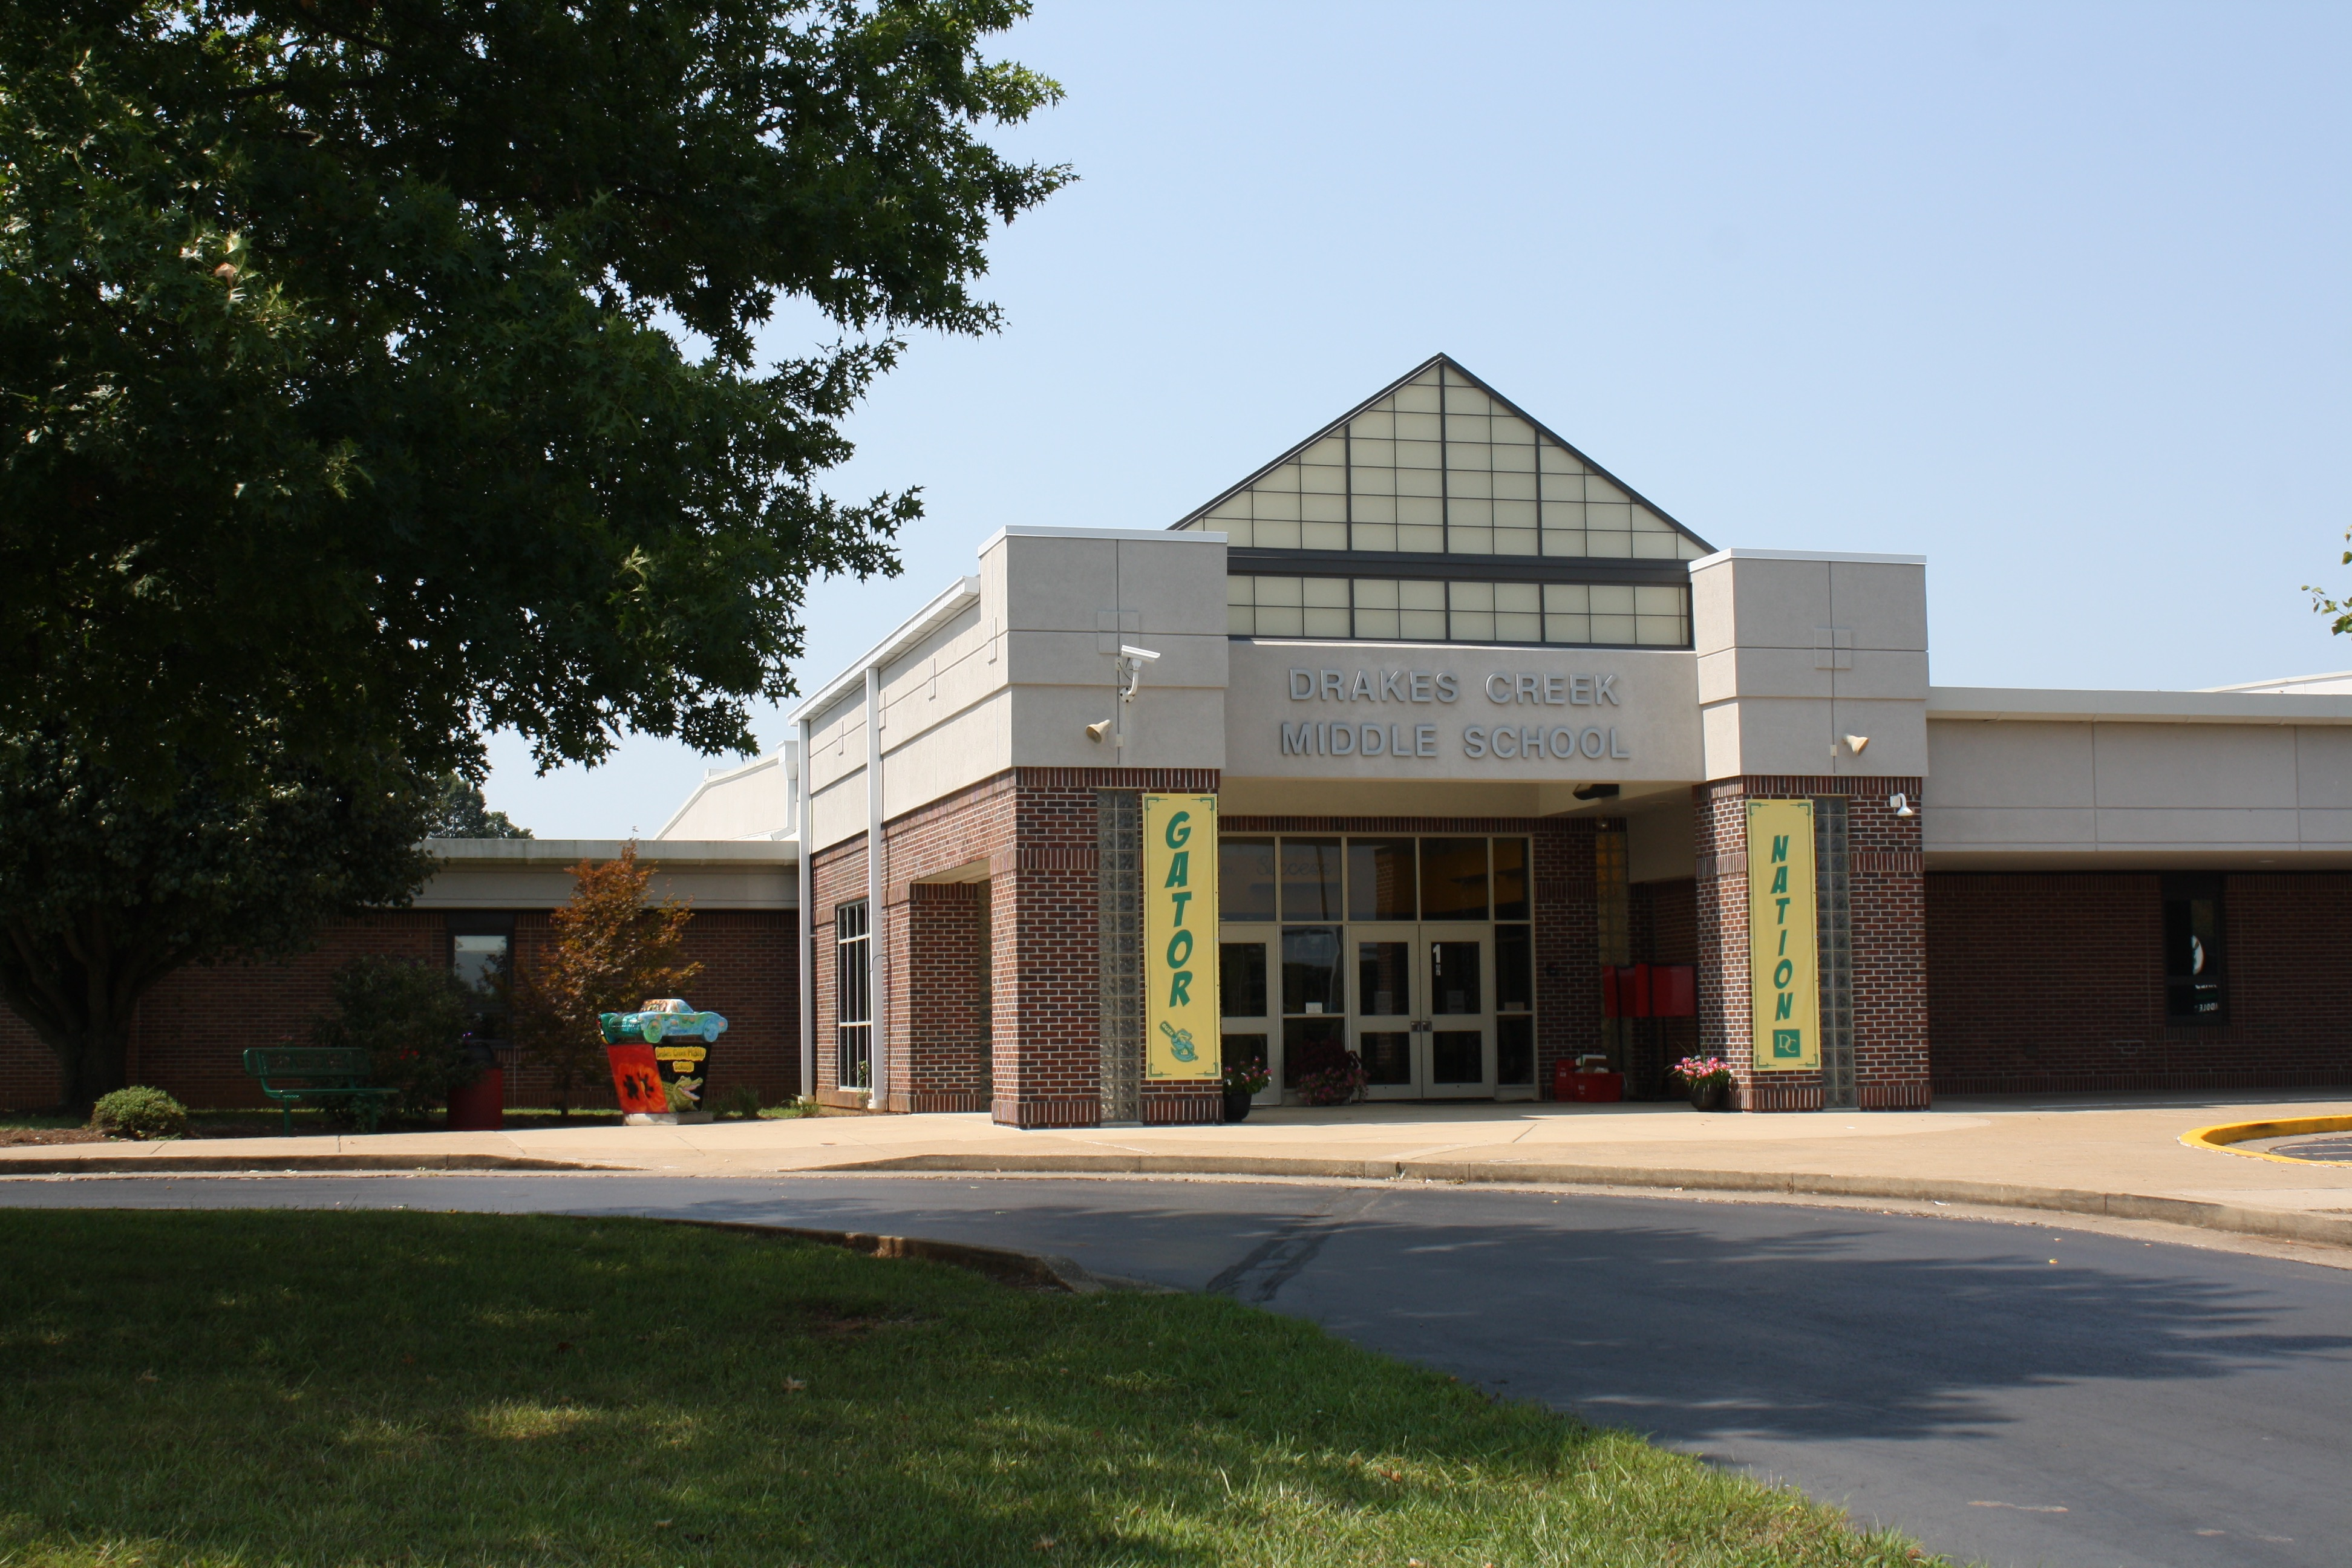 Drakes Creek Middle School